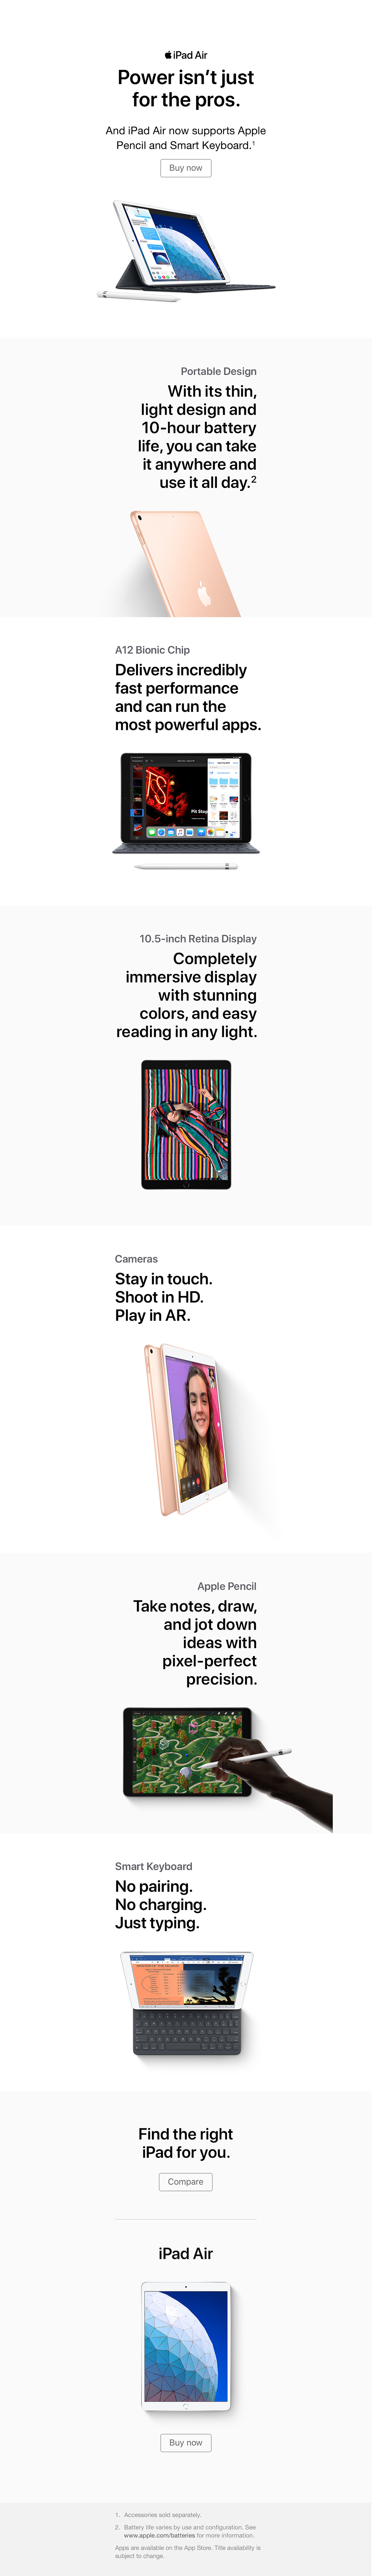 MEEN-iPad Air_r1227_OVERVIEW-PAGE-S_A_v1